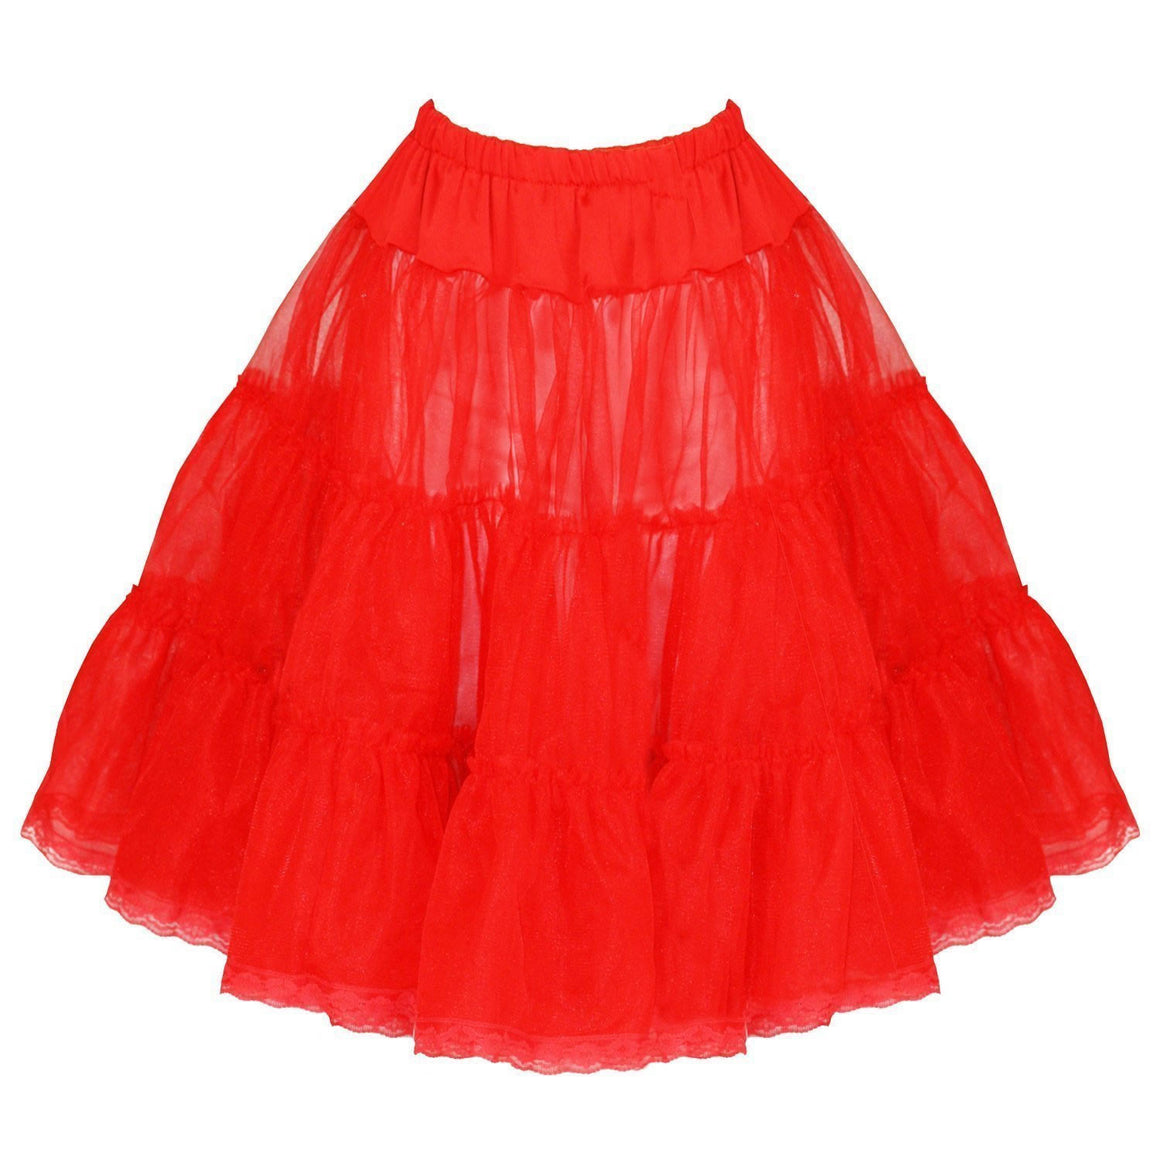 Red Net Vintage Rockabilly 50s Petticoat Skirt - Pretty Kitty Fashion